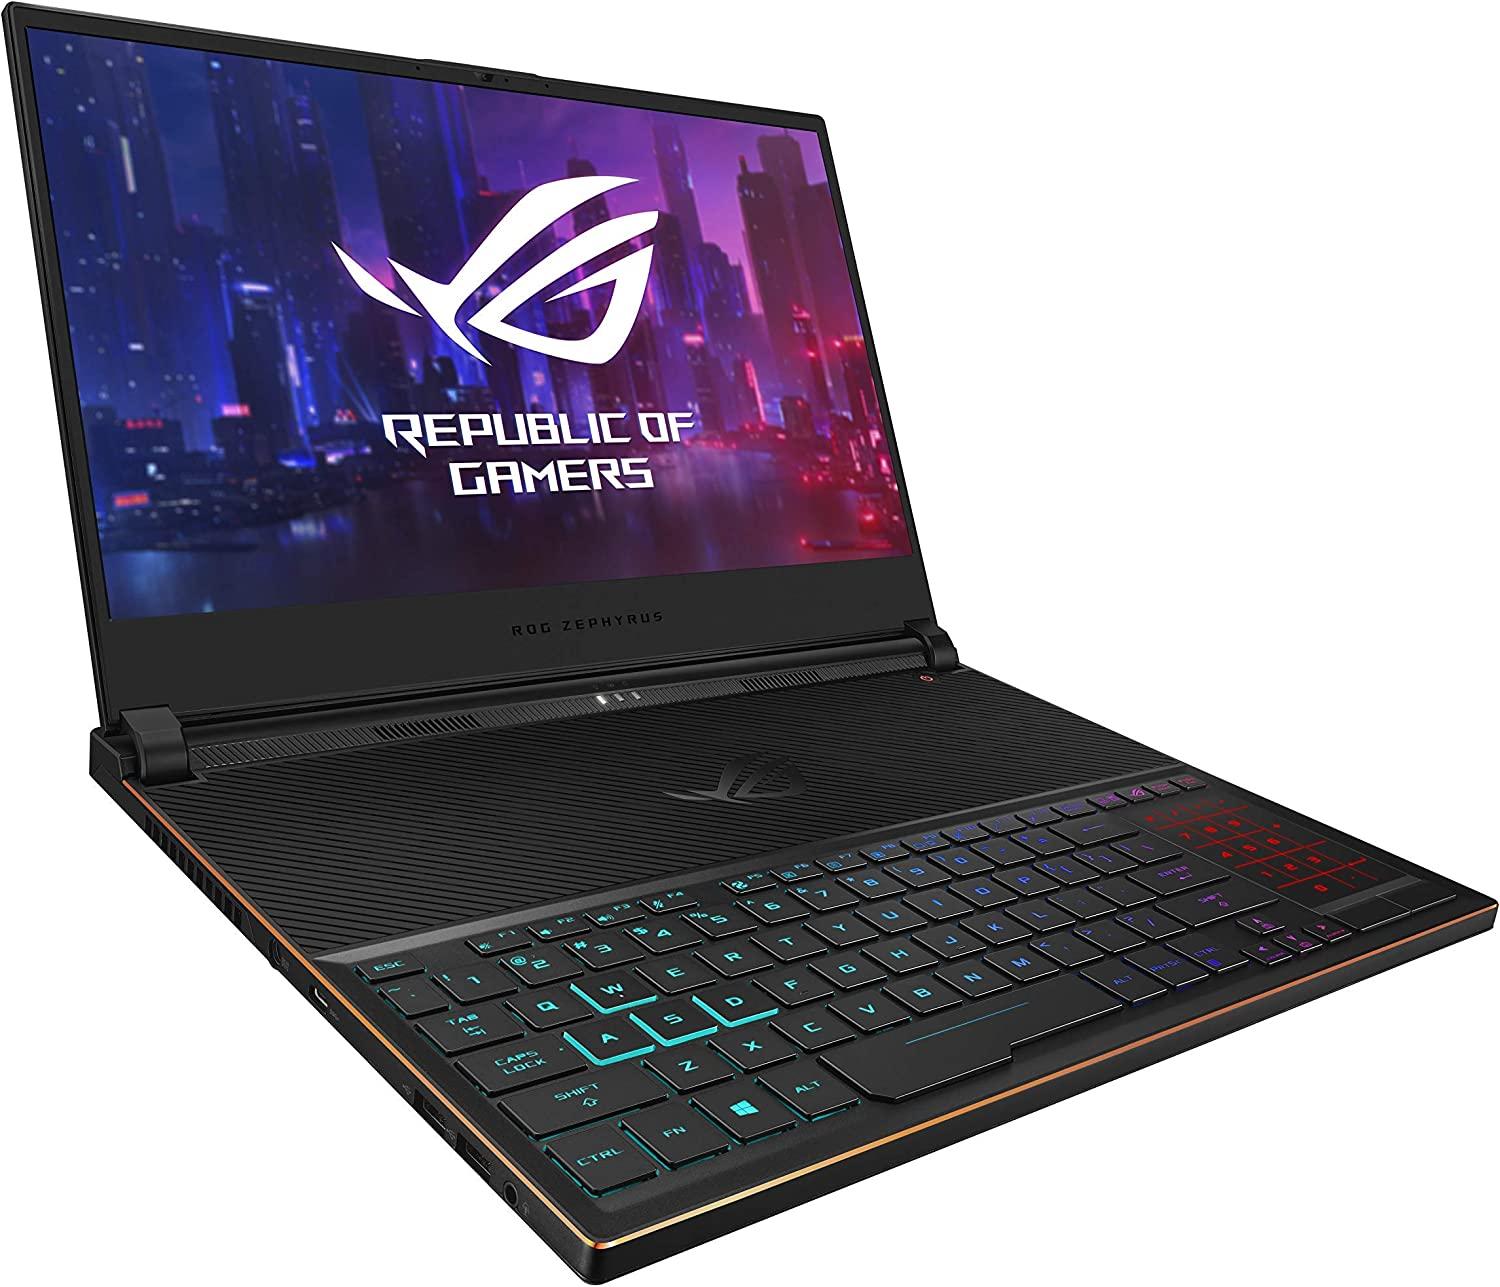 ASUS ROG Zephyrus S Ultra Slim Gaming Laptop, 15.6 144Hz IPS Type FHD, GeForce RTX 2070, Intel Core i7-8750H, 16GB DDR4, 512GB PCIe NVMe SSD Windows 10 GX531GW-AS76 (Renewed)